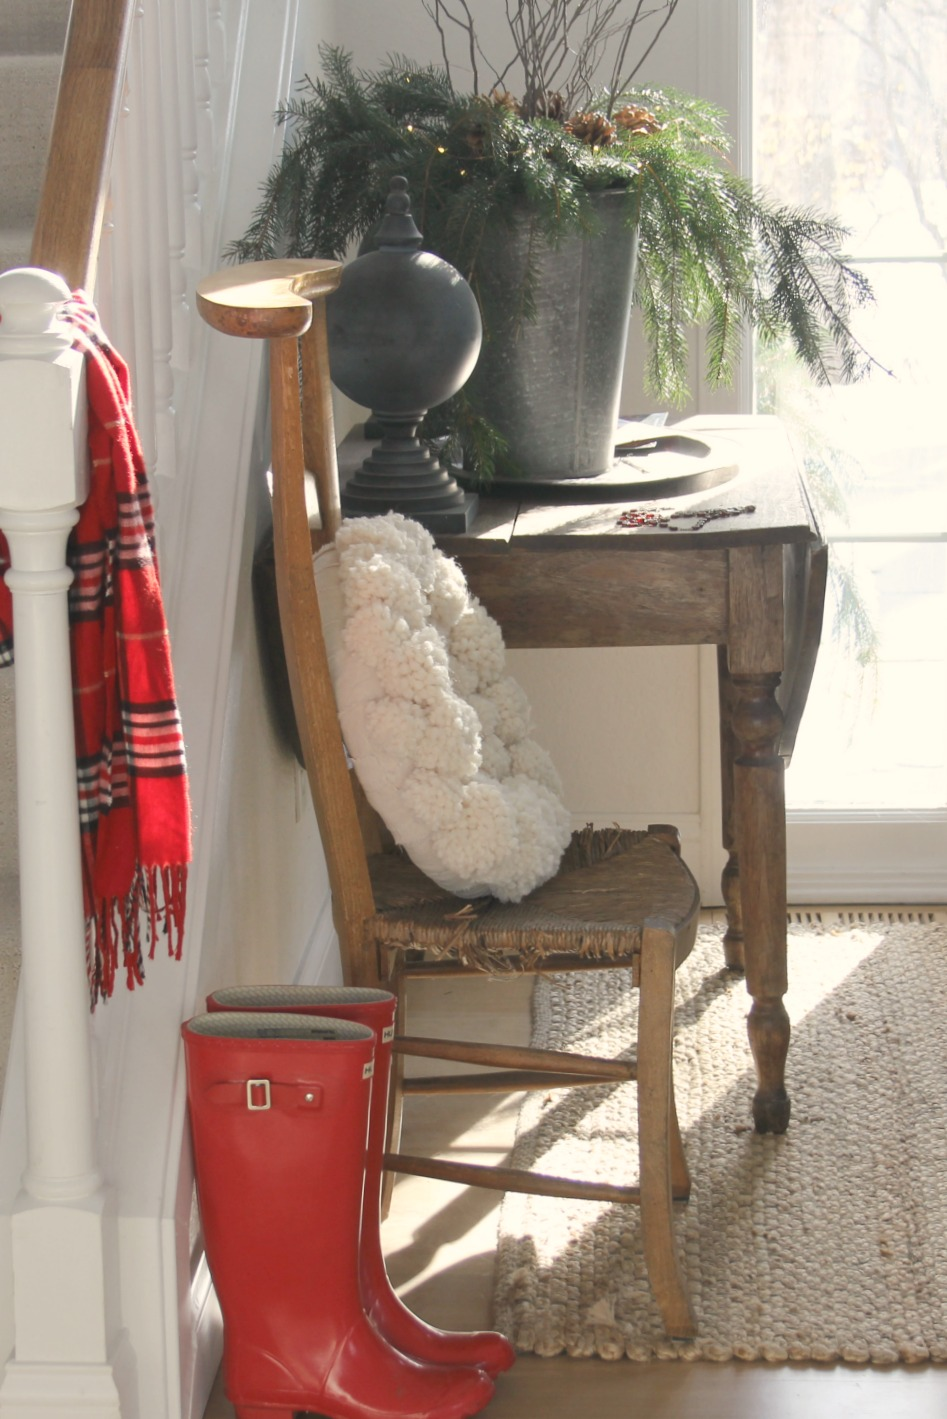 Holiday vignette with red wellies and plaid scarf with vintage chair and wooly wreath. #hellolovelystudio #christmasdecor #wellies #entry